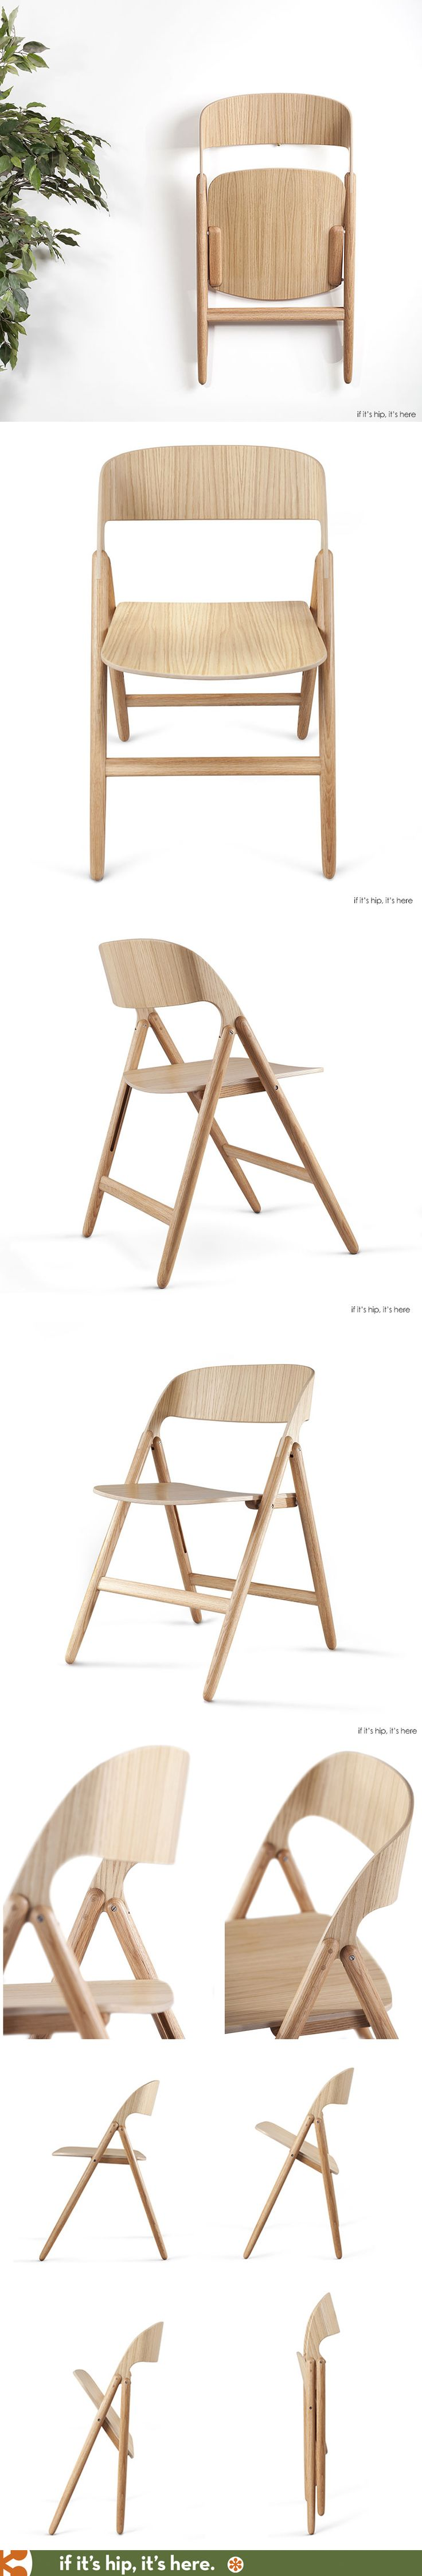 How to make seat cushions for dining chairs moreover white resin - Beautiful New Wooden Folding Chair Introduced At Icff Finally A Decent Folding Chair